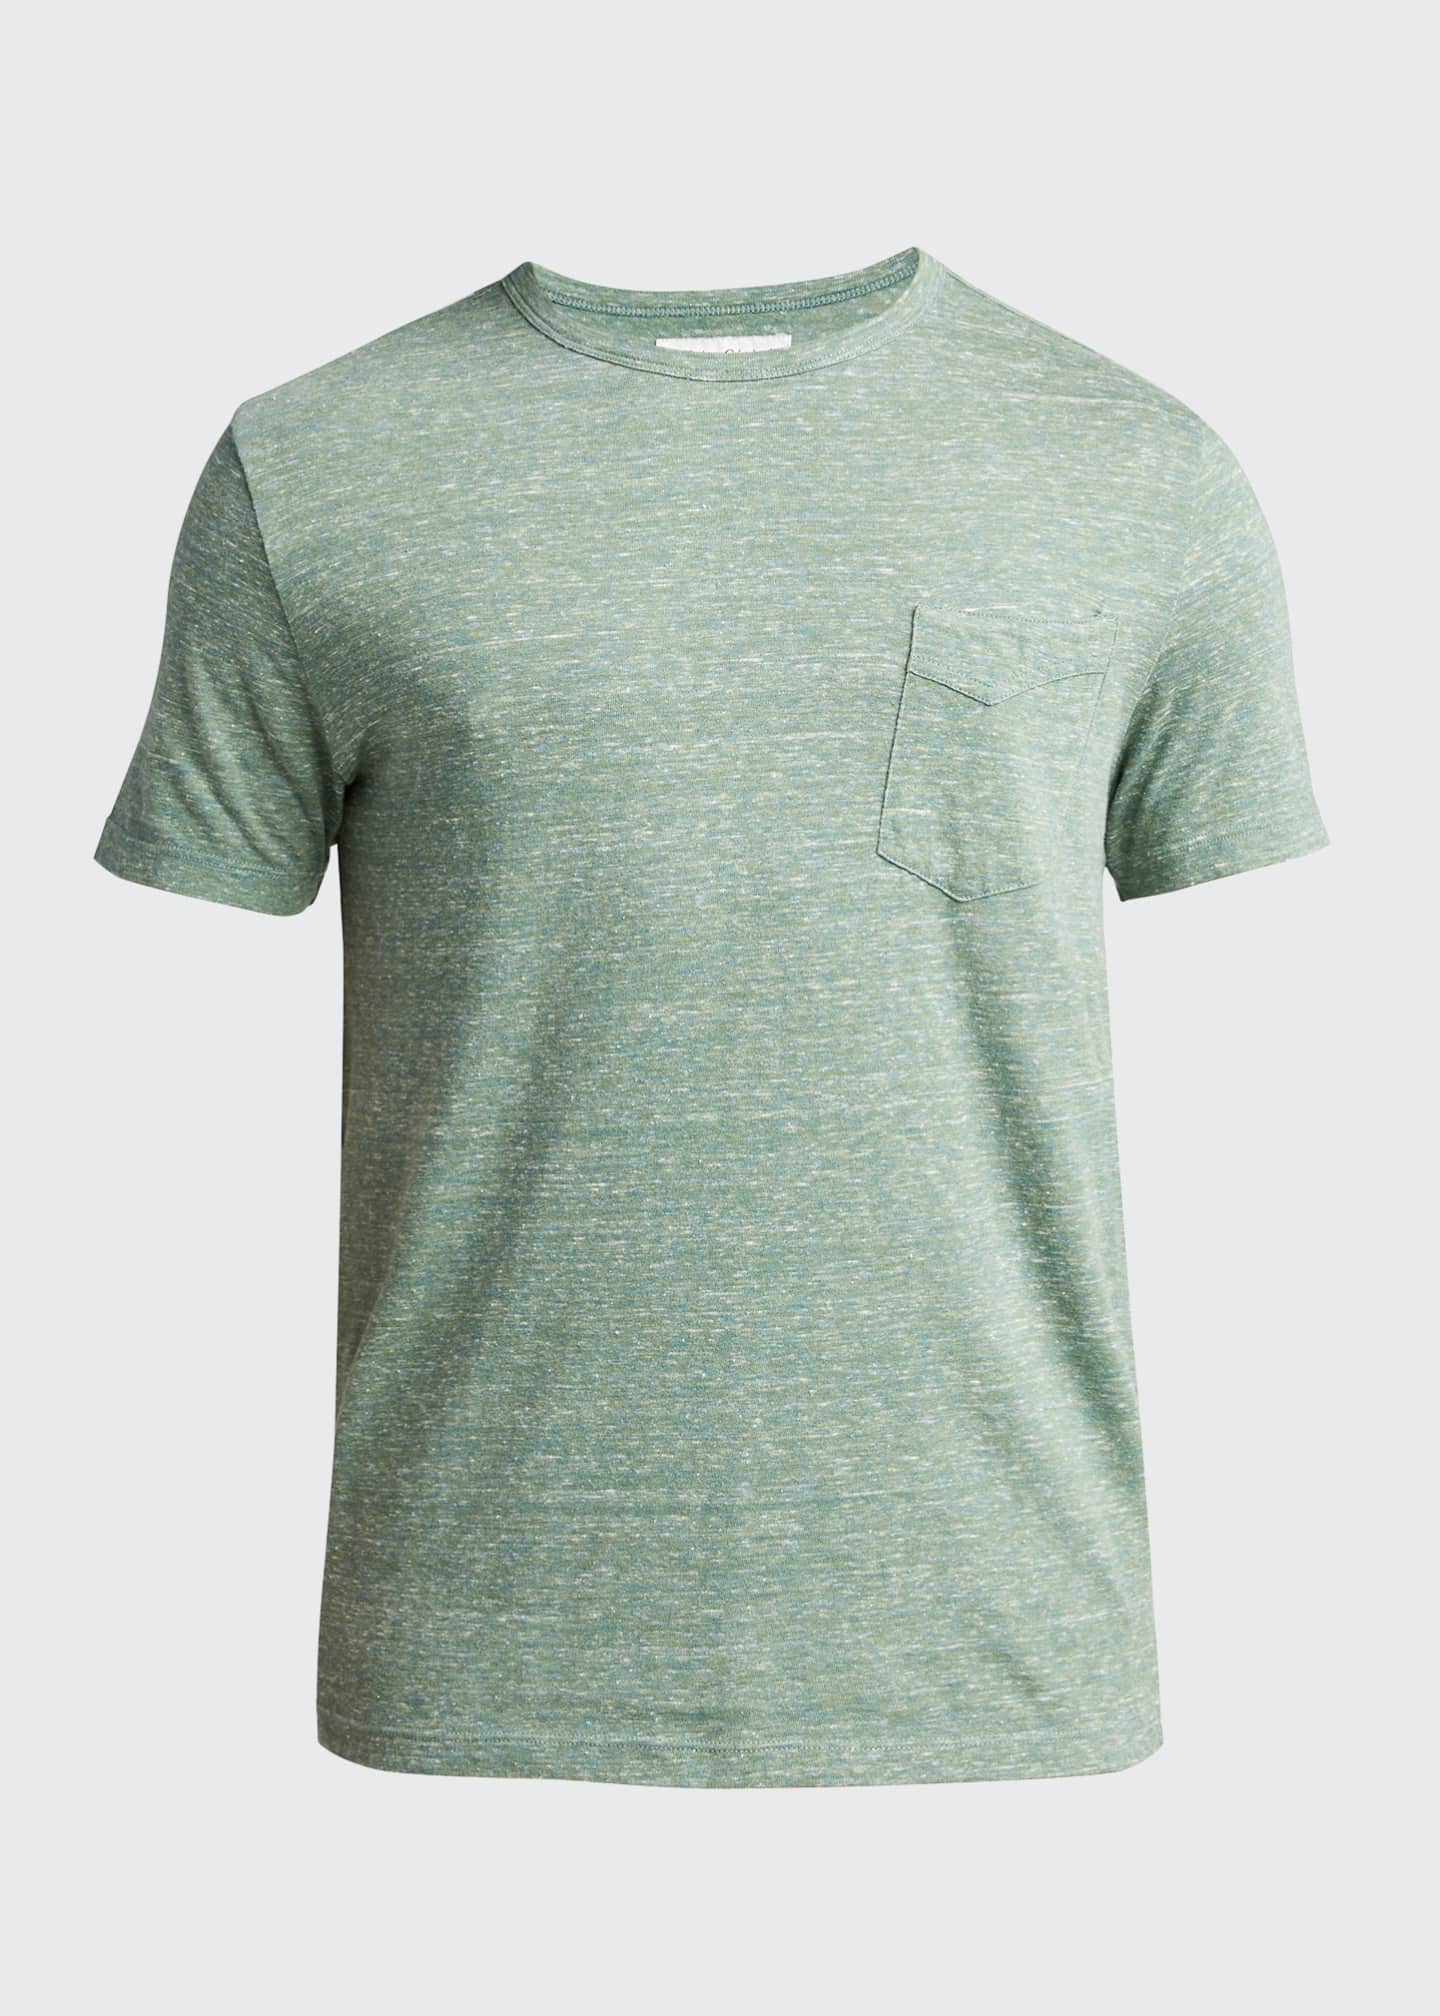 Image 5 of 5: Men's Light Green Cotton Jersey Slub T-Shirt